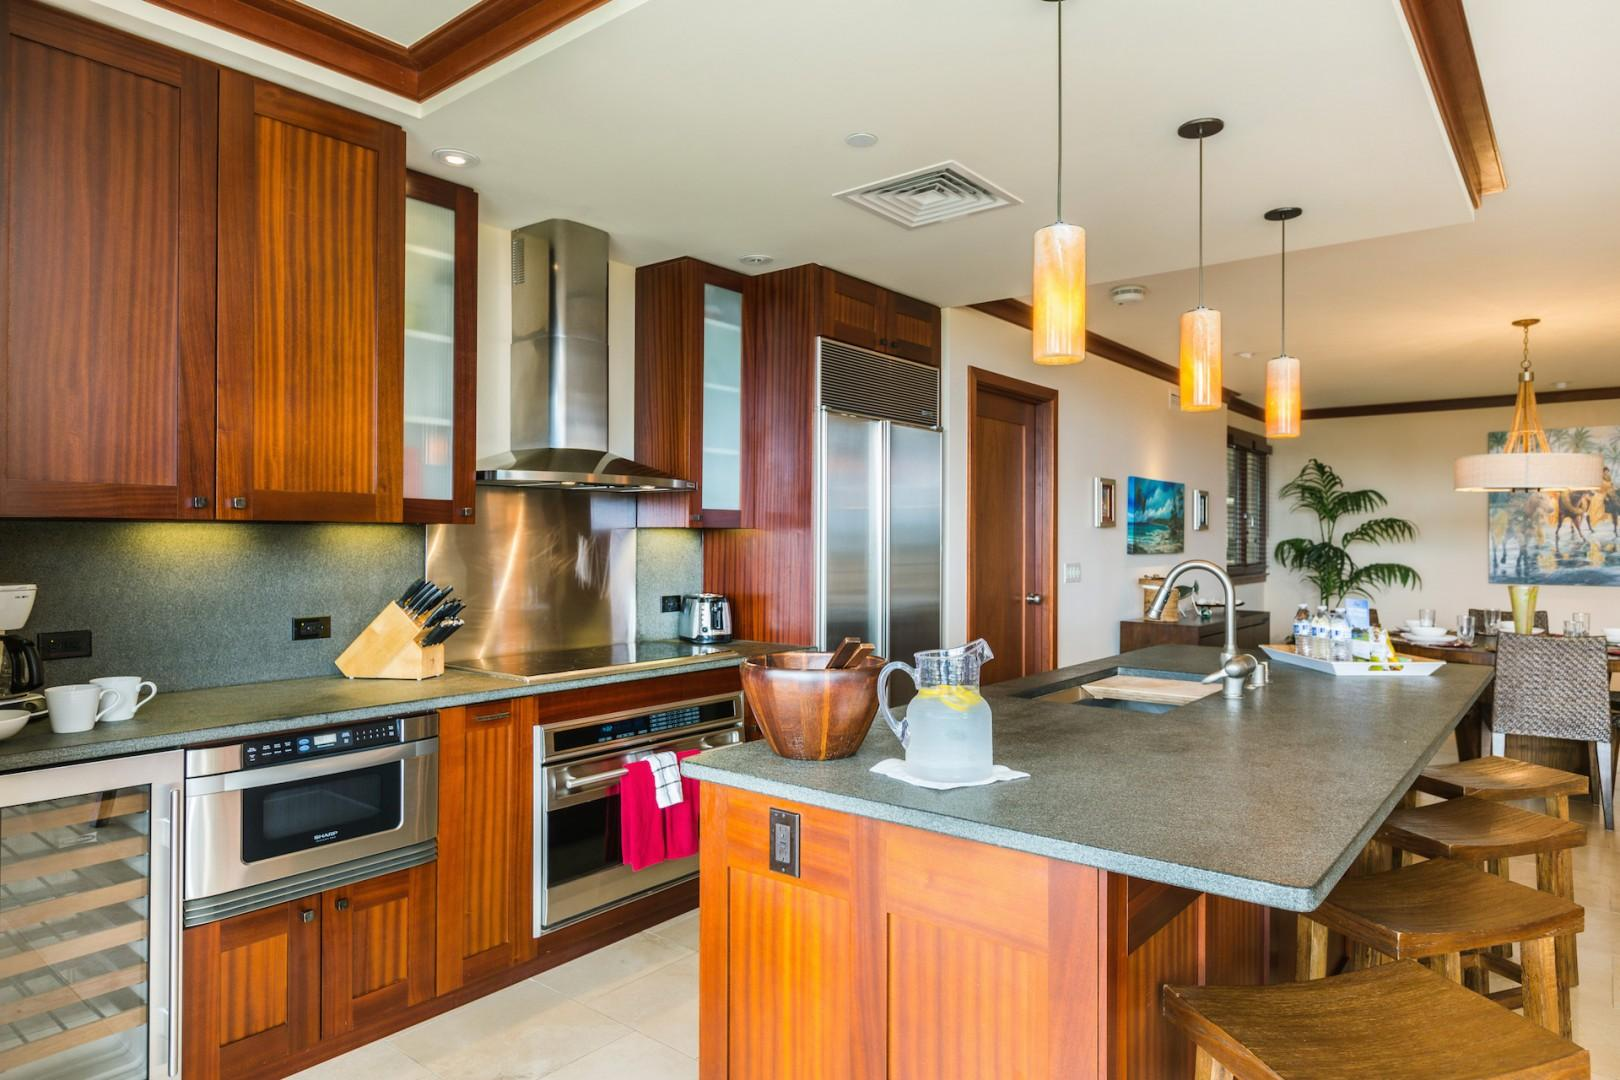 Gourmet kitchen designed by famed Hawaii chef Roy Yamaguchi. Bar seating for four.